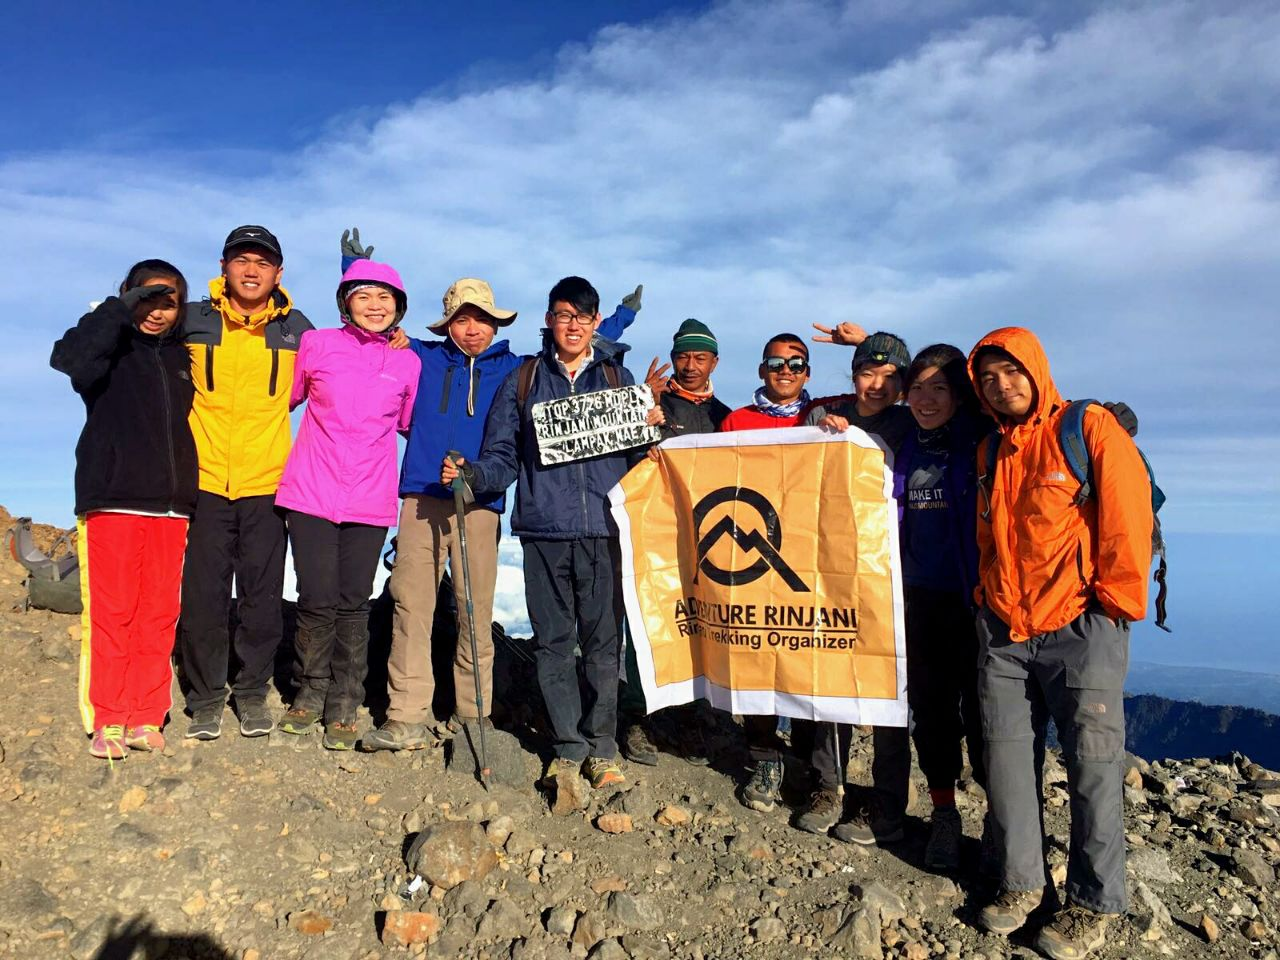 Climbing mount rinjani package lombok island indonesia about us - Profile Adventure Rinjani Trekking Packages With More Knowledges About The Culture In Northern Lombok And True Story Of Locals In Mount Rinjani